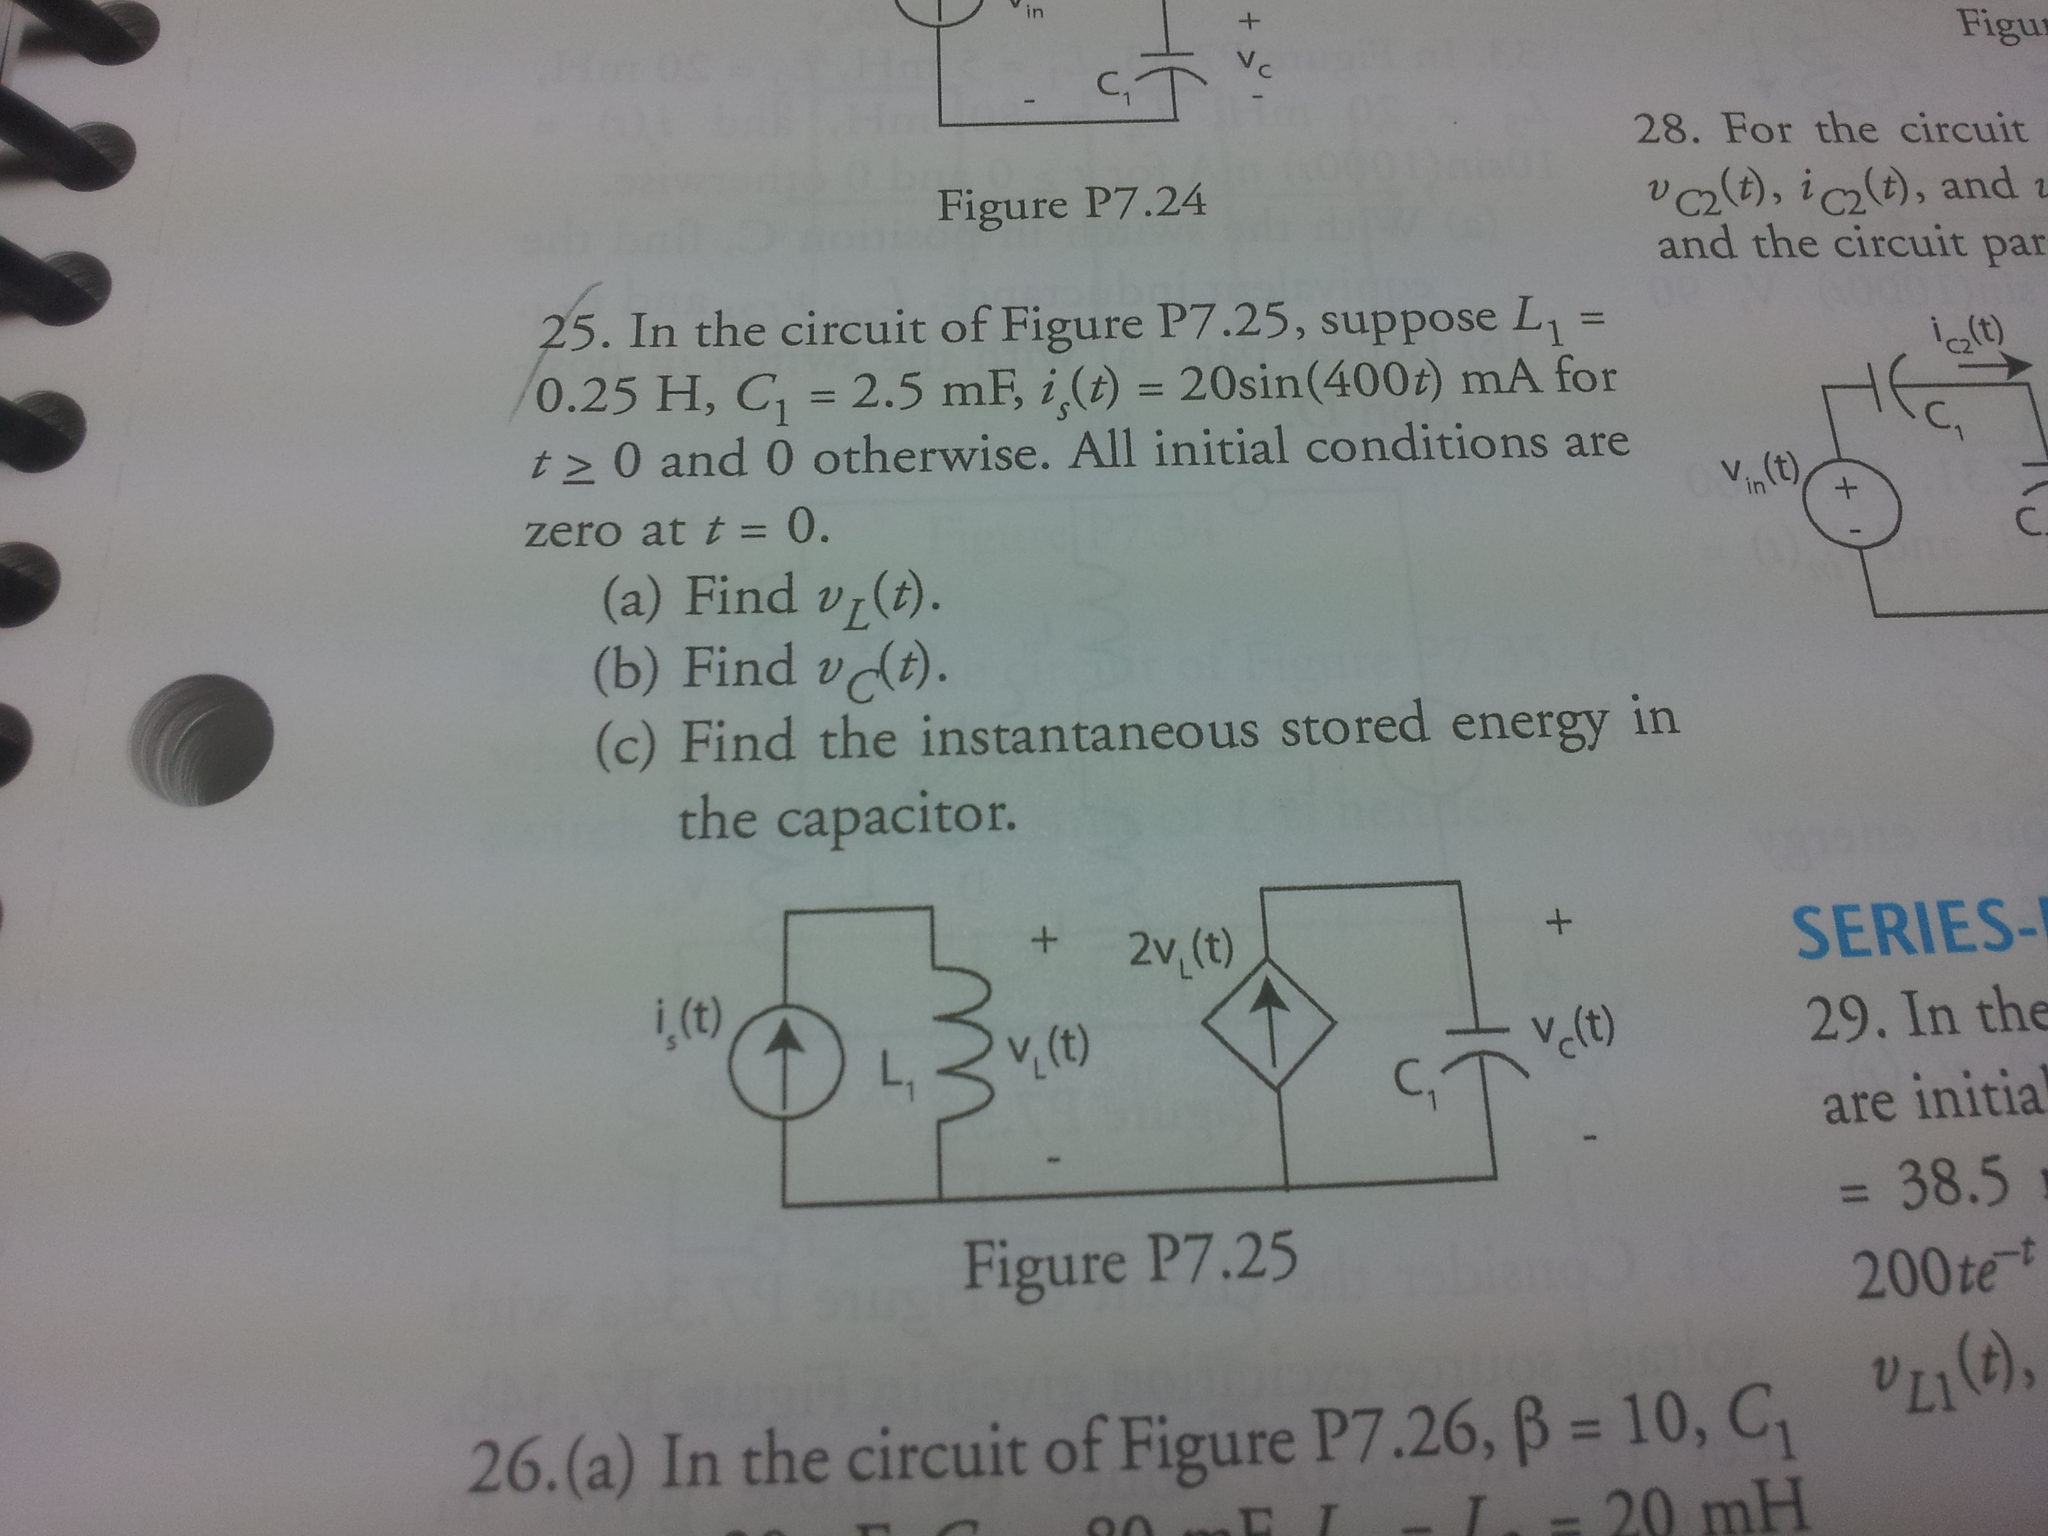 In the circuit of Figure P7.25, suppose L1 = 0.25